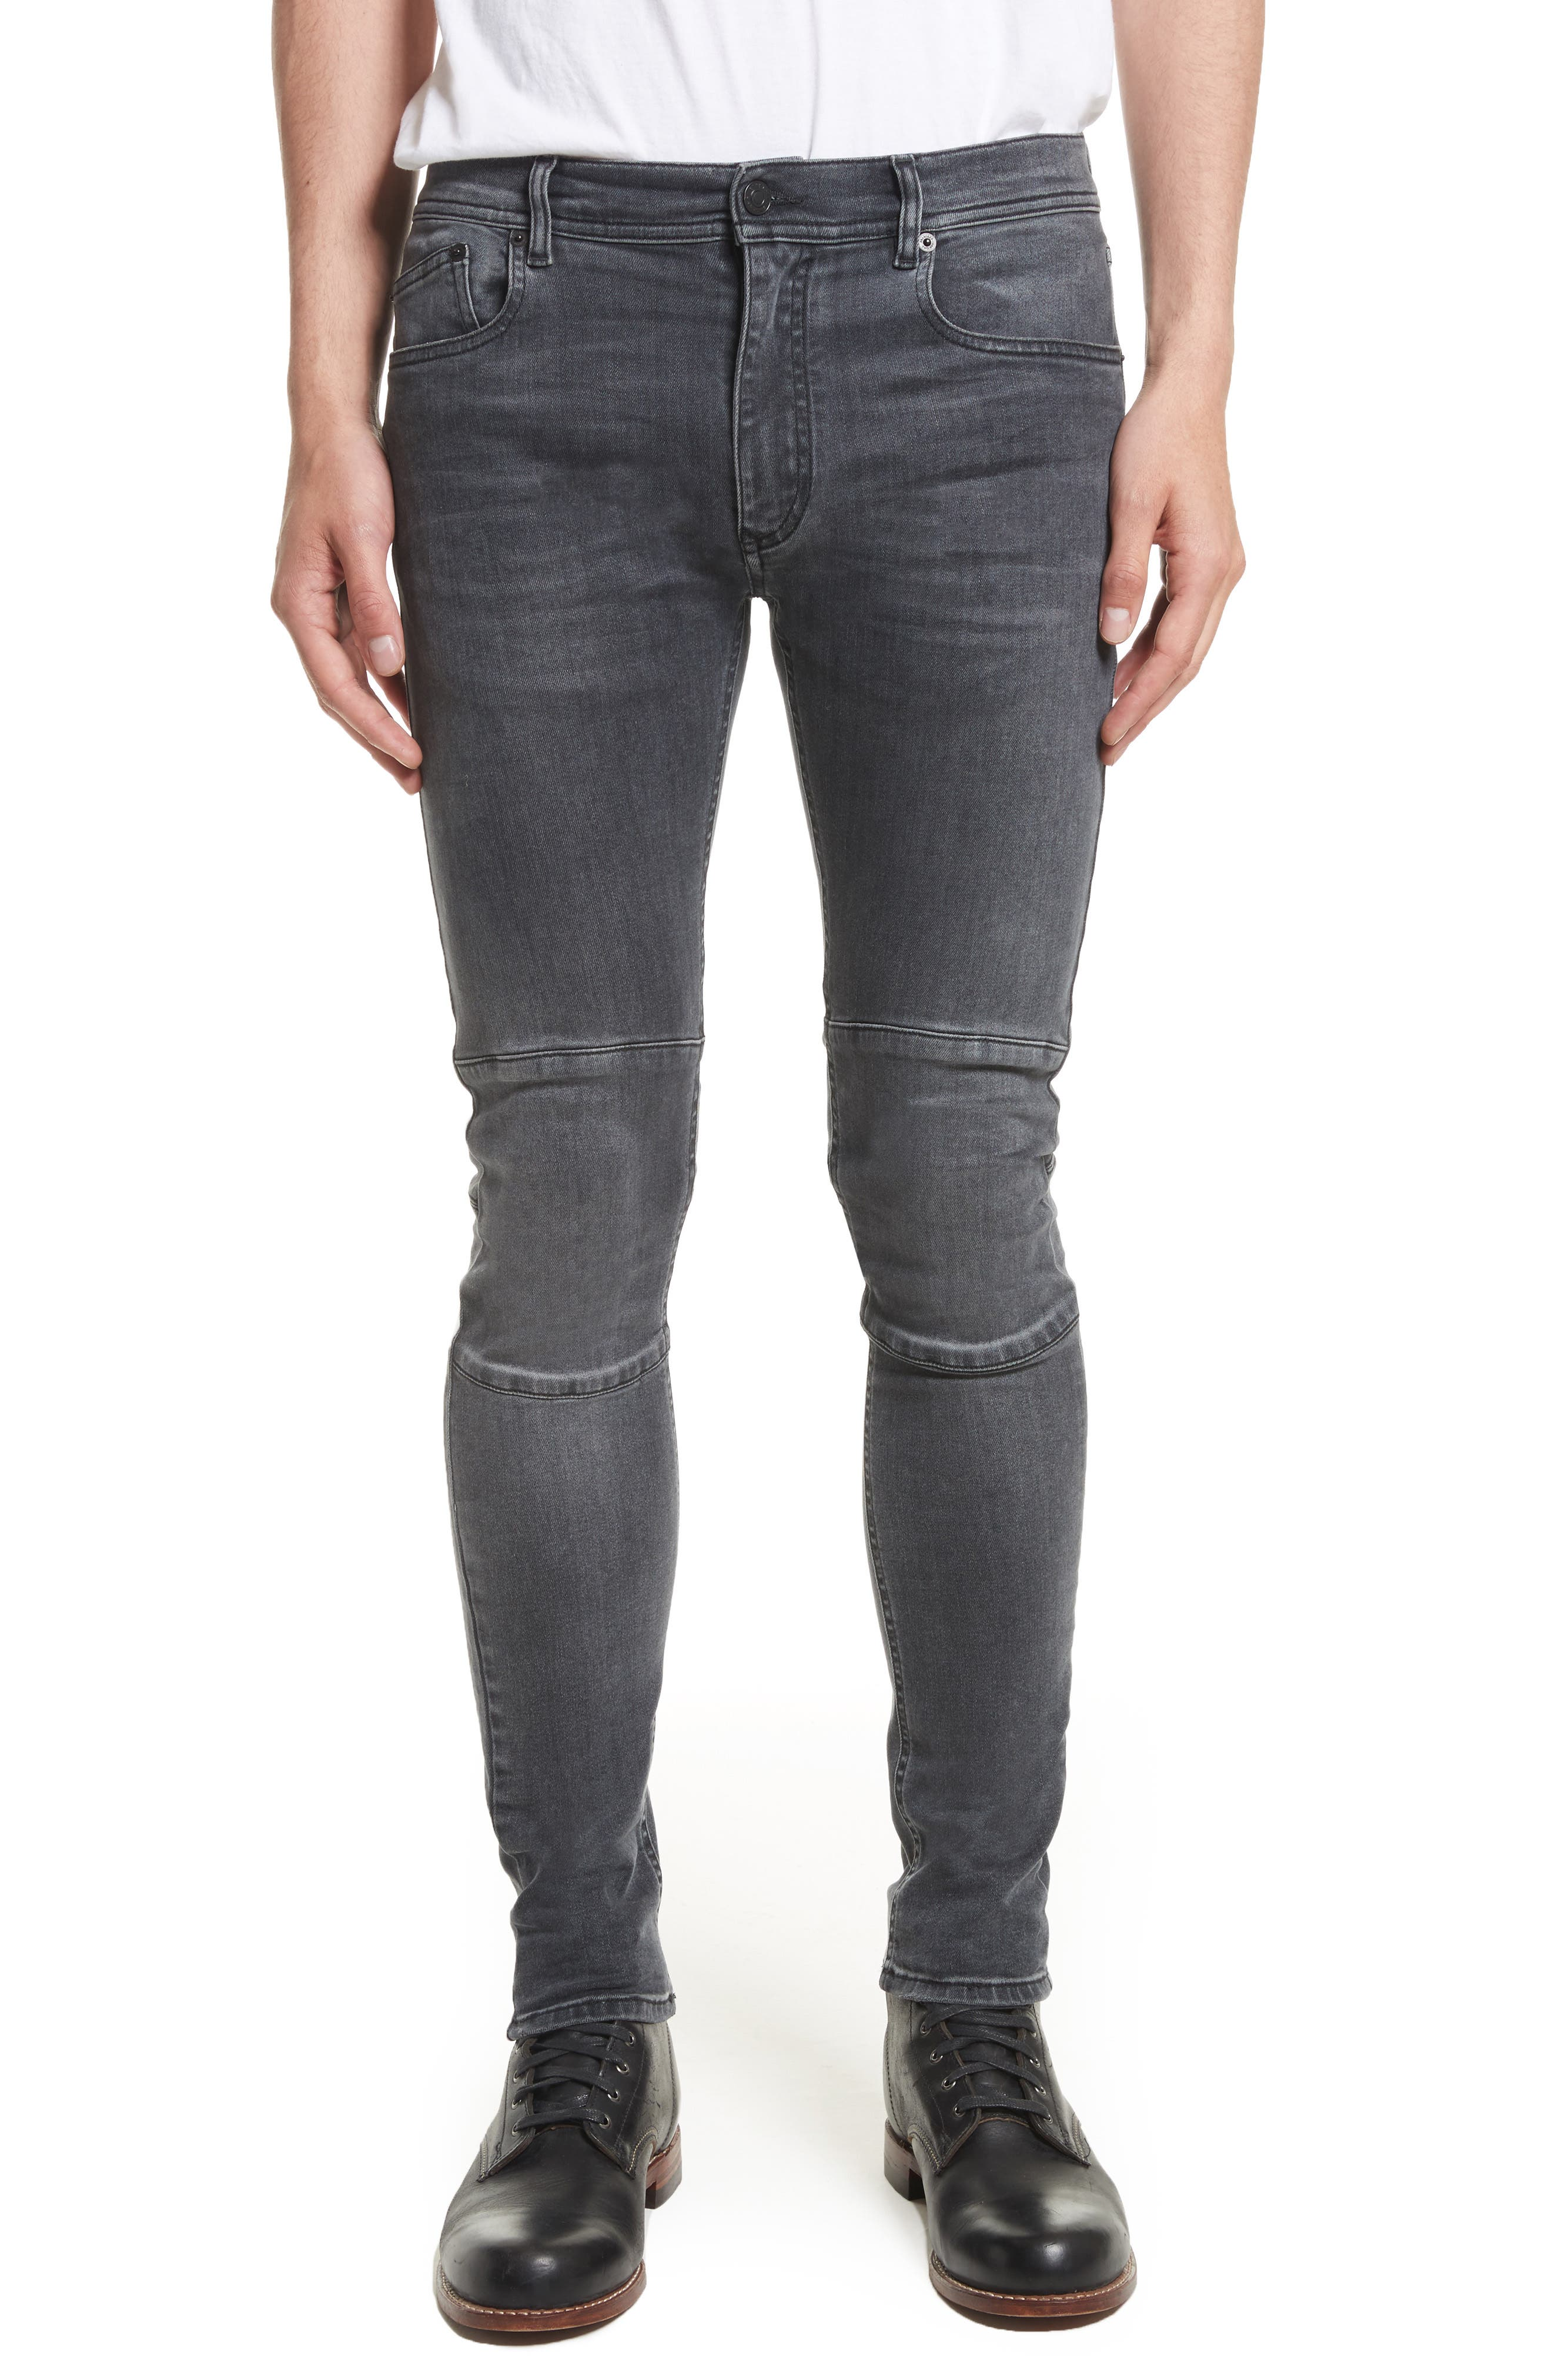 Tattenhall Washed Denim Skinny Jeans,                         Main,                         color, Charcoal